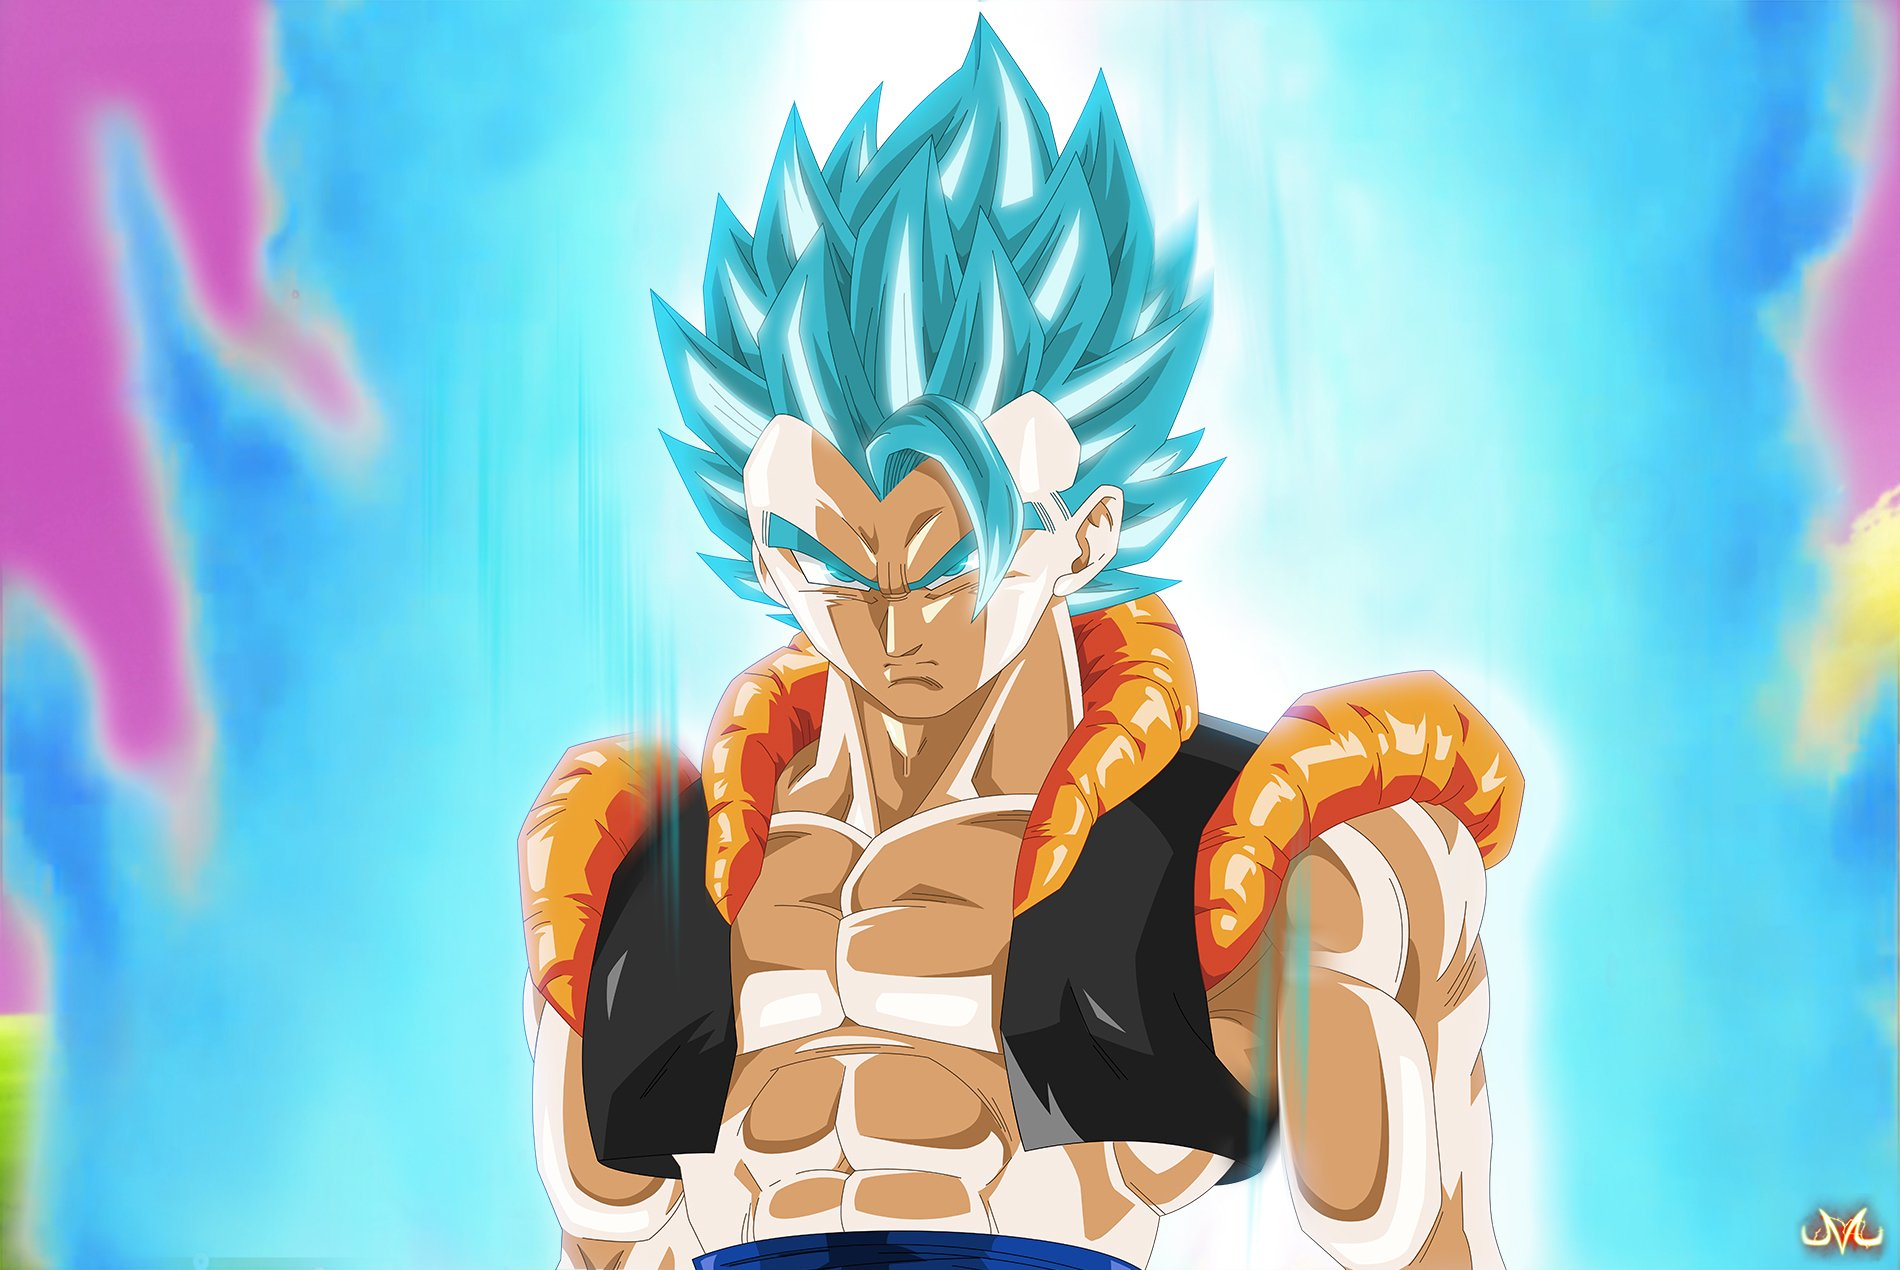 111 Gogeta (Dragon Ball) HD Wallpapers